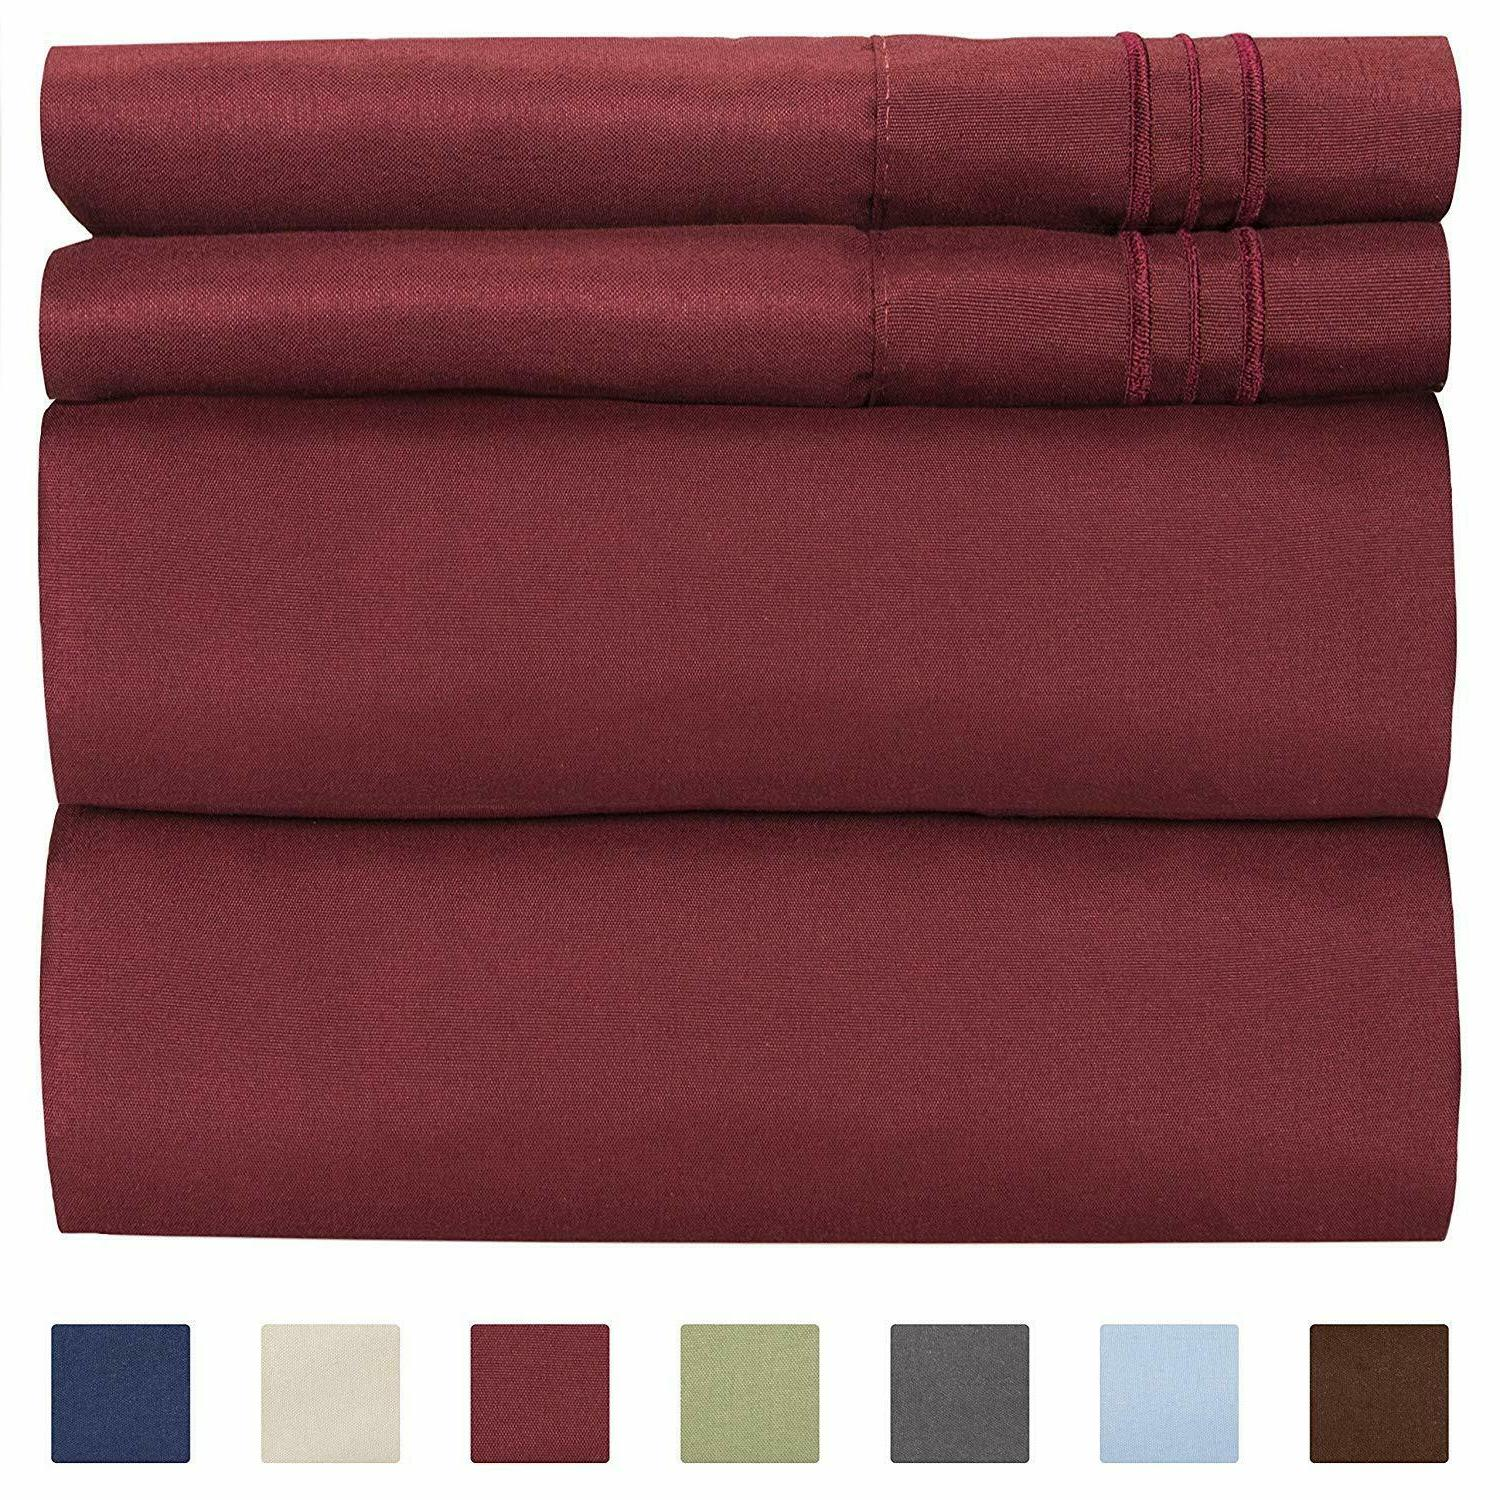 Queen Size Wrinkle Bed Sheets 4